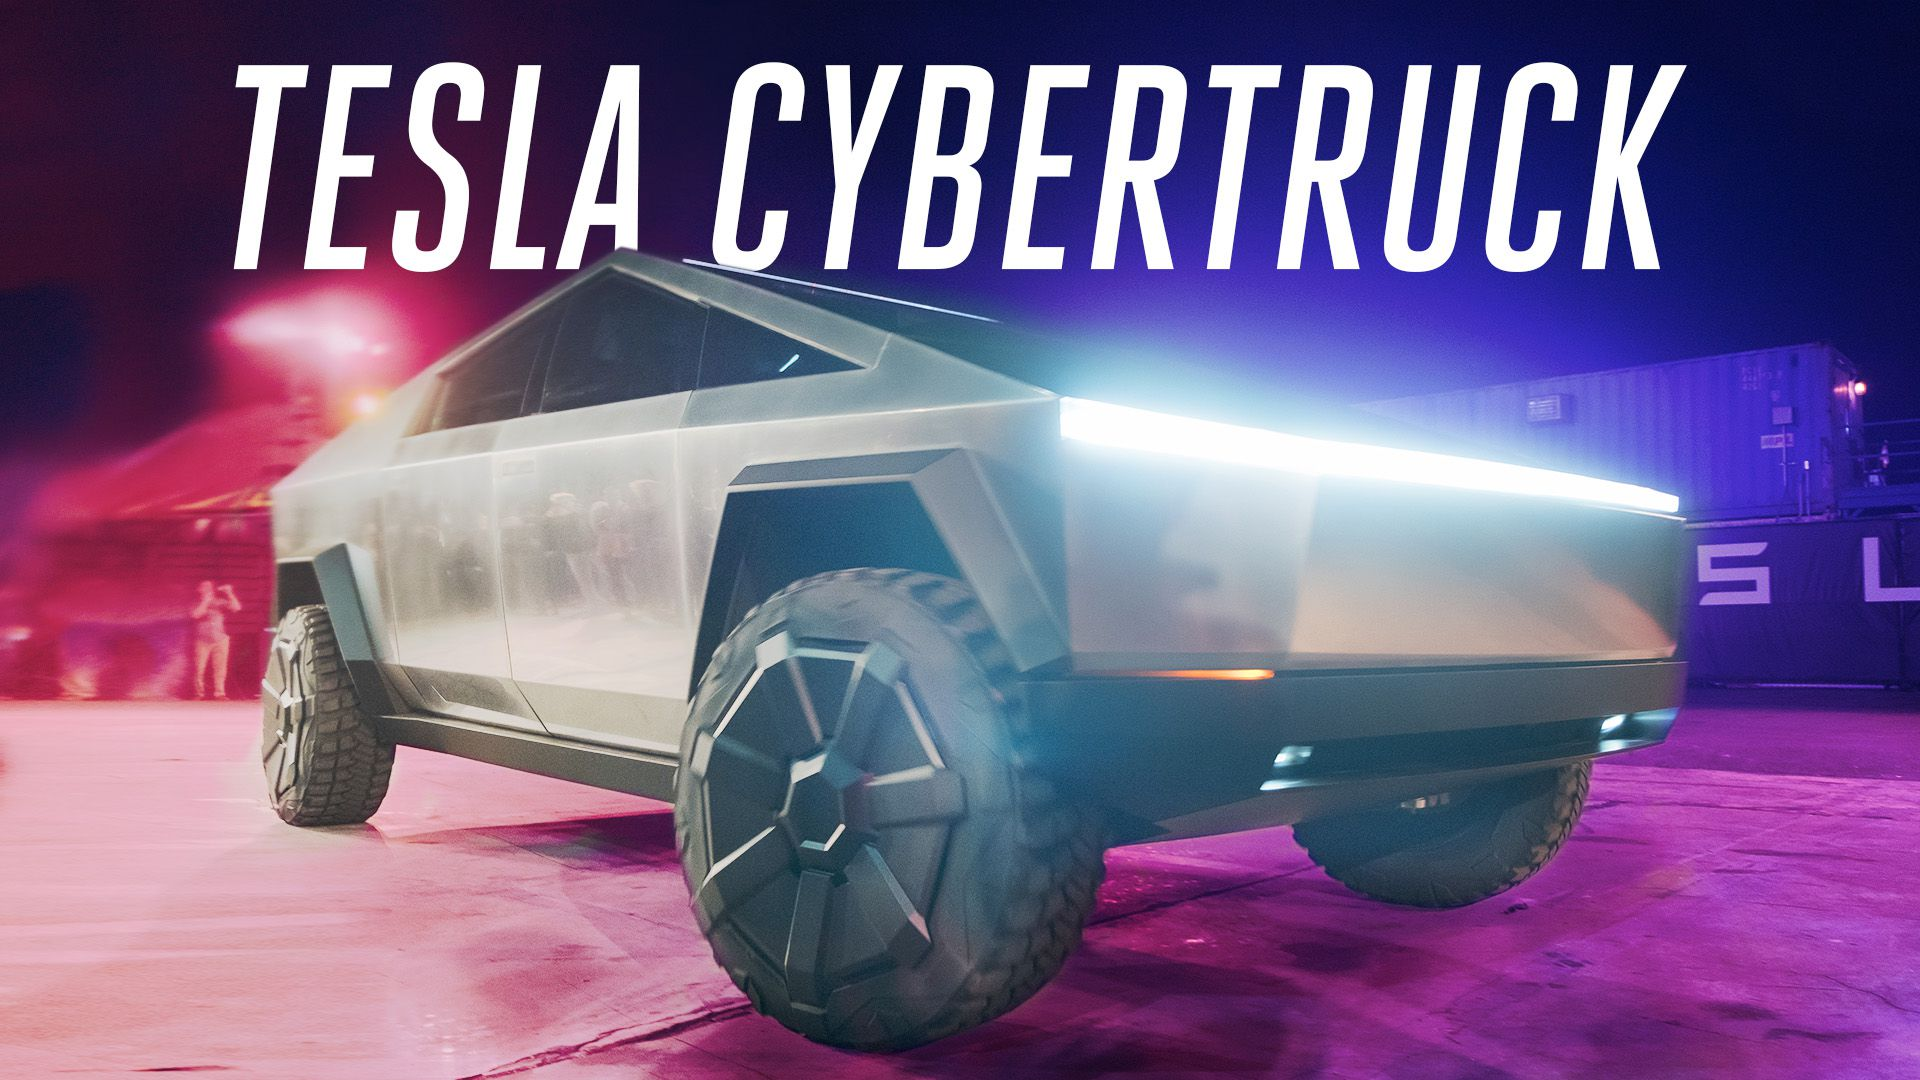 Tesla Cybertruck Review How the Latest EV from Elon Musk has Already Won the Market